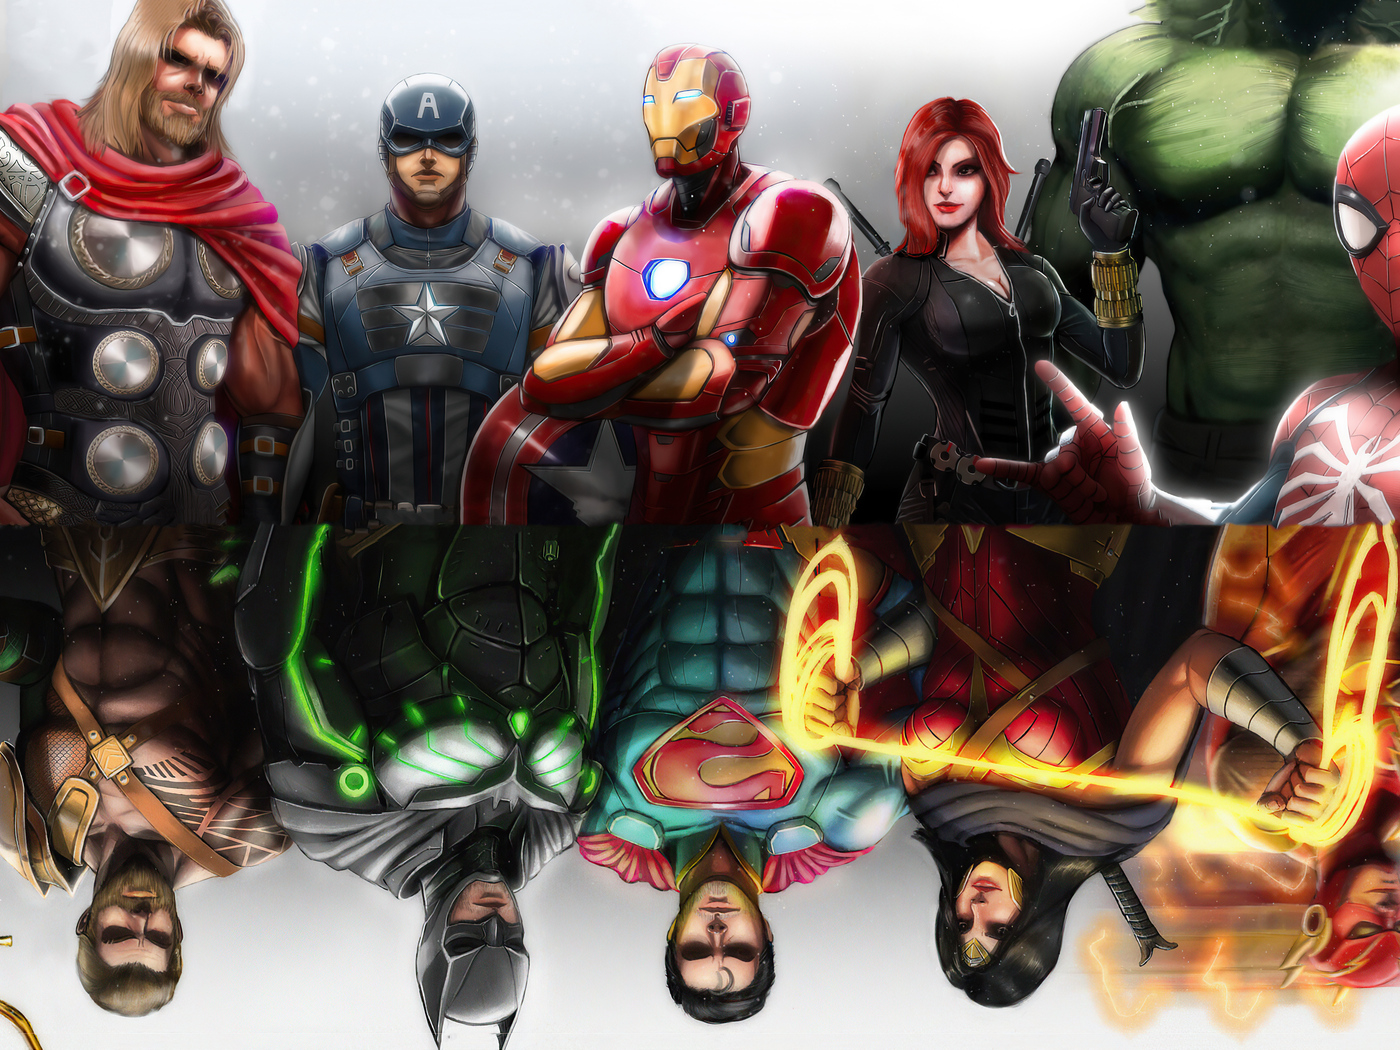 old-and-new-avengers-and-justice-league-6d.jpg